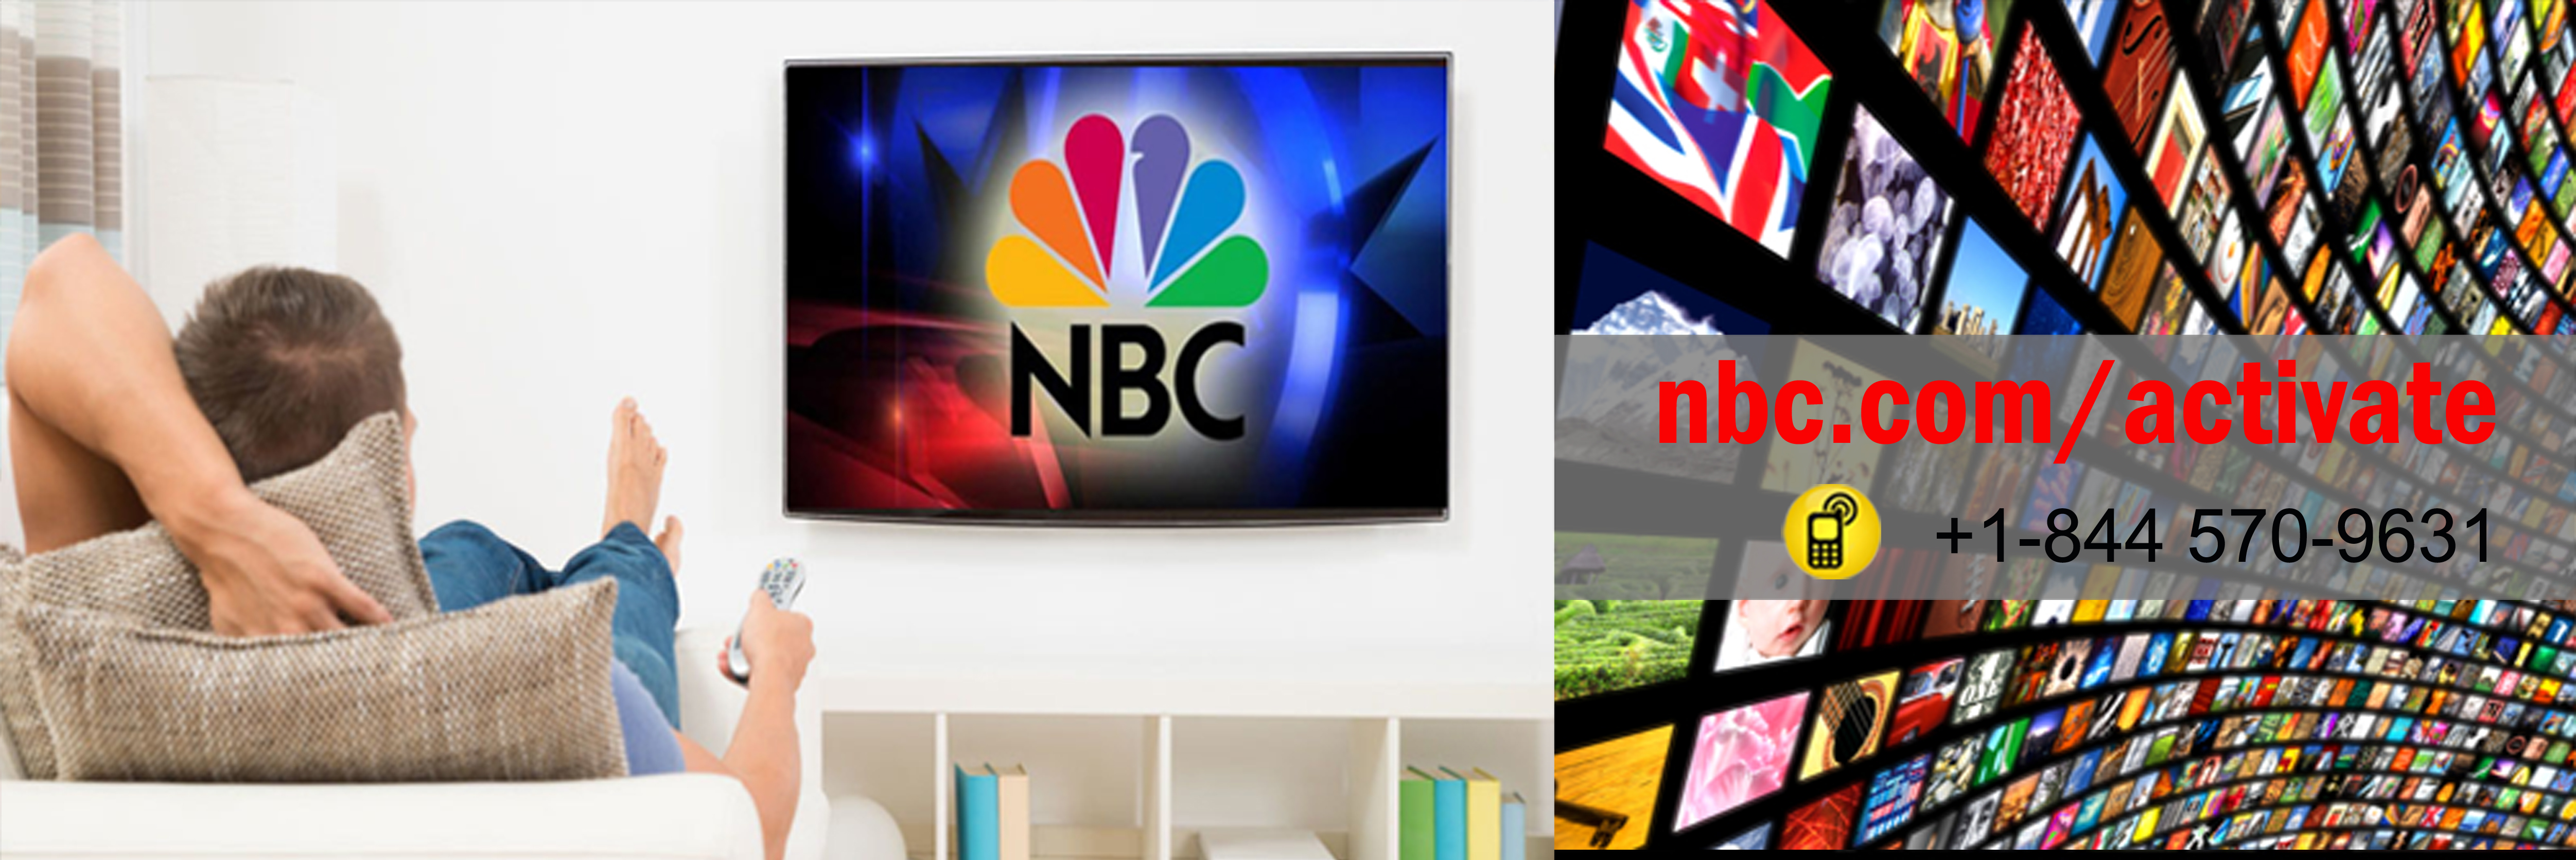 BEST GUIDELINE TO ACTIVATE NBC CHANNEL THROUGH nbc.com/activate